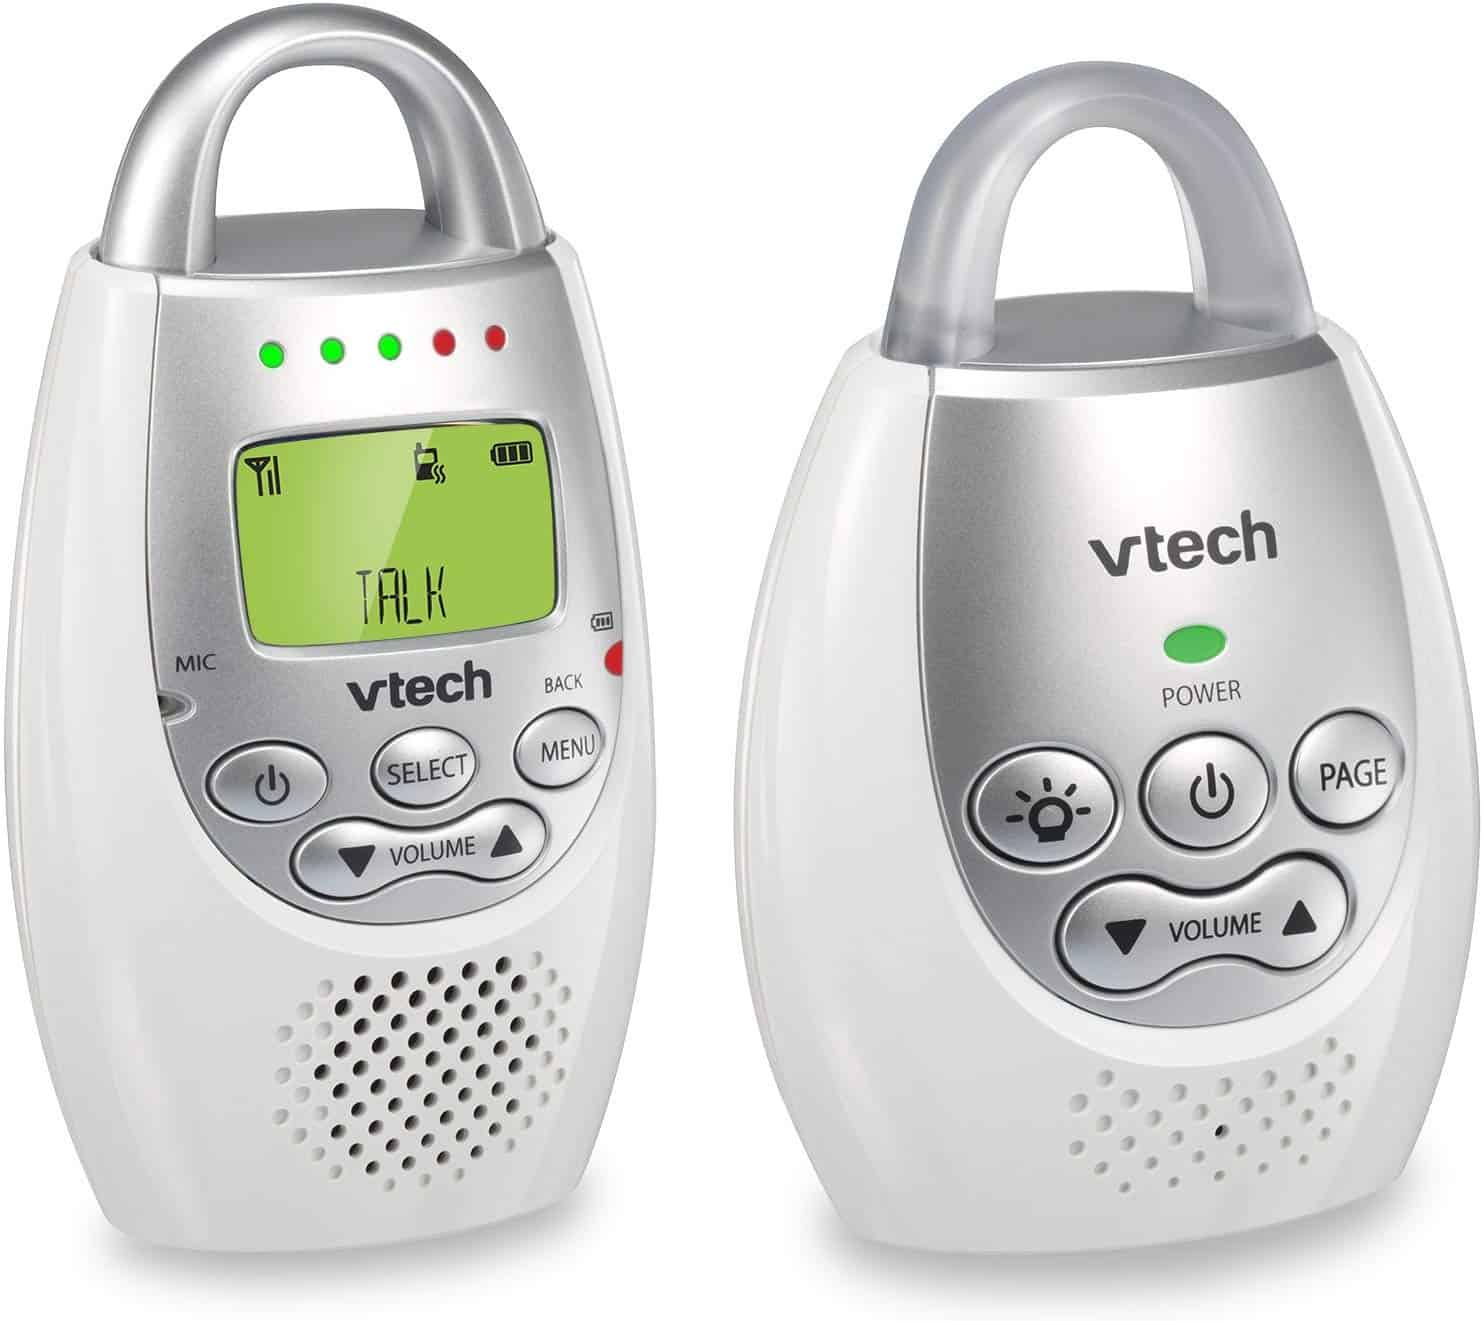 VTech Audio Baby Monitor Review